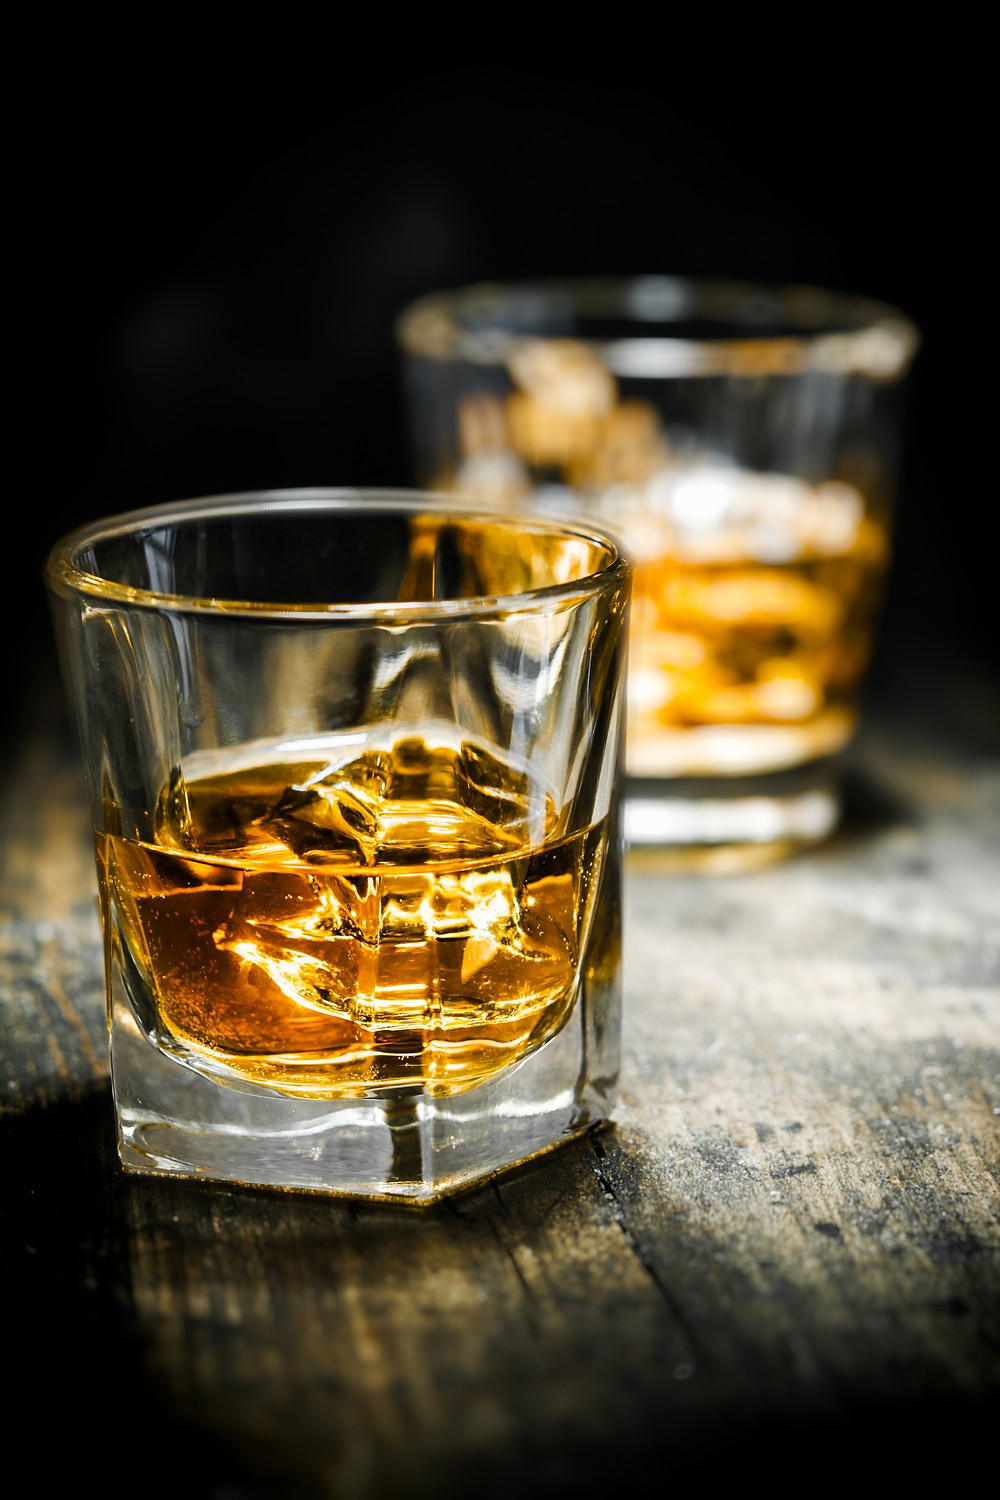 Two glasses of scotch on the rocks